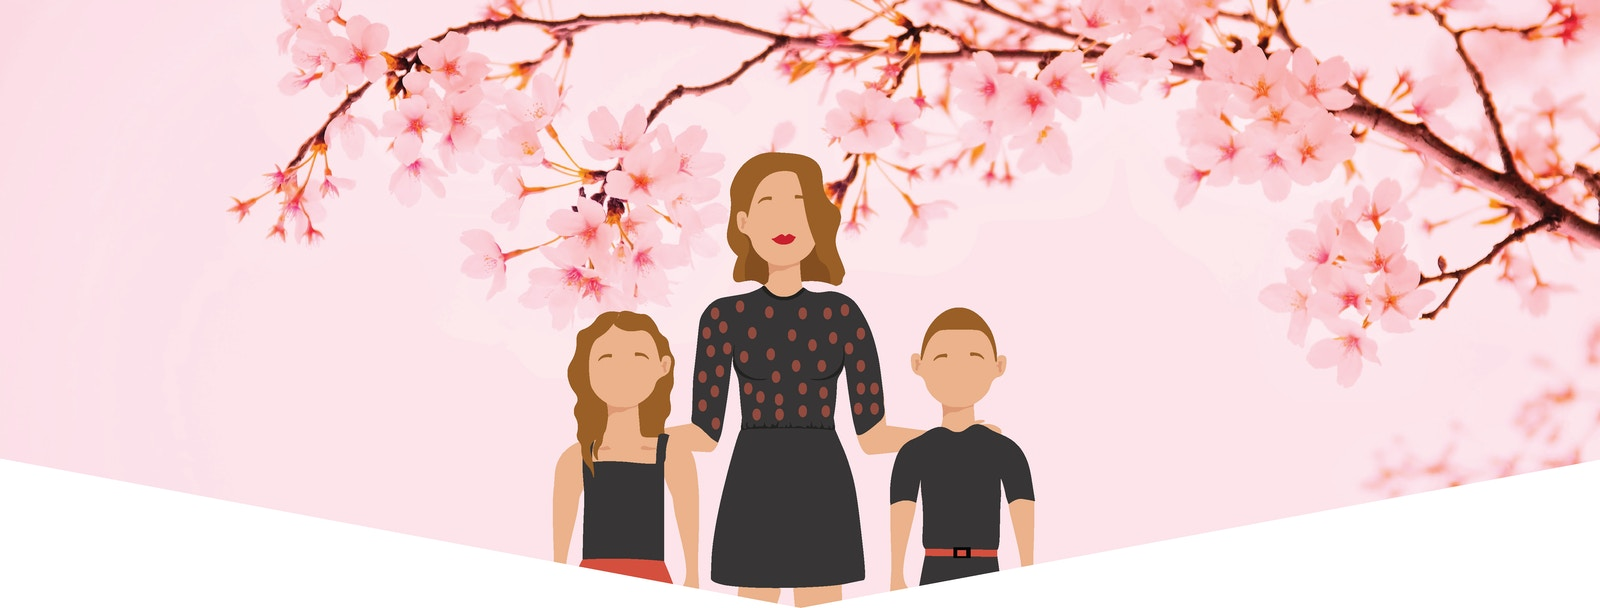 Illustration of woman with two kids